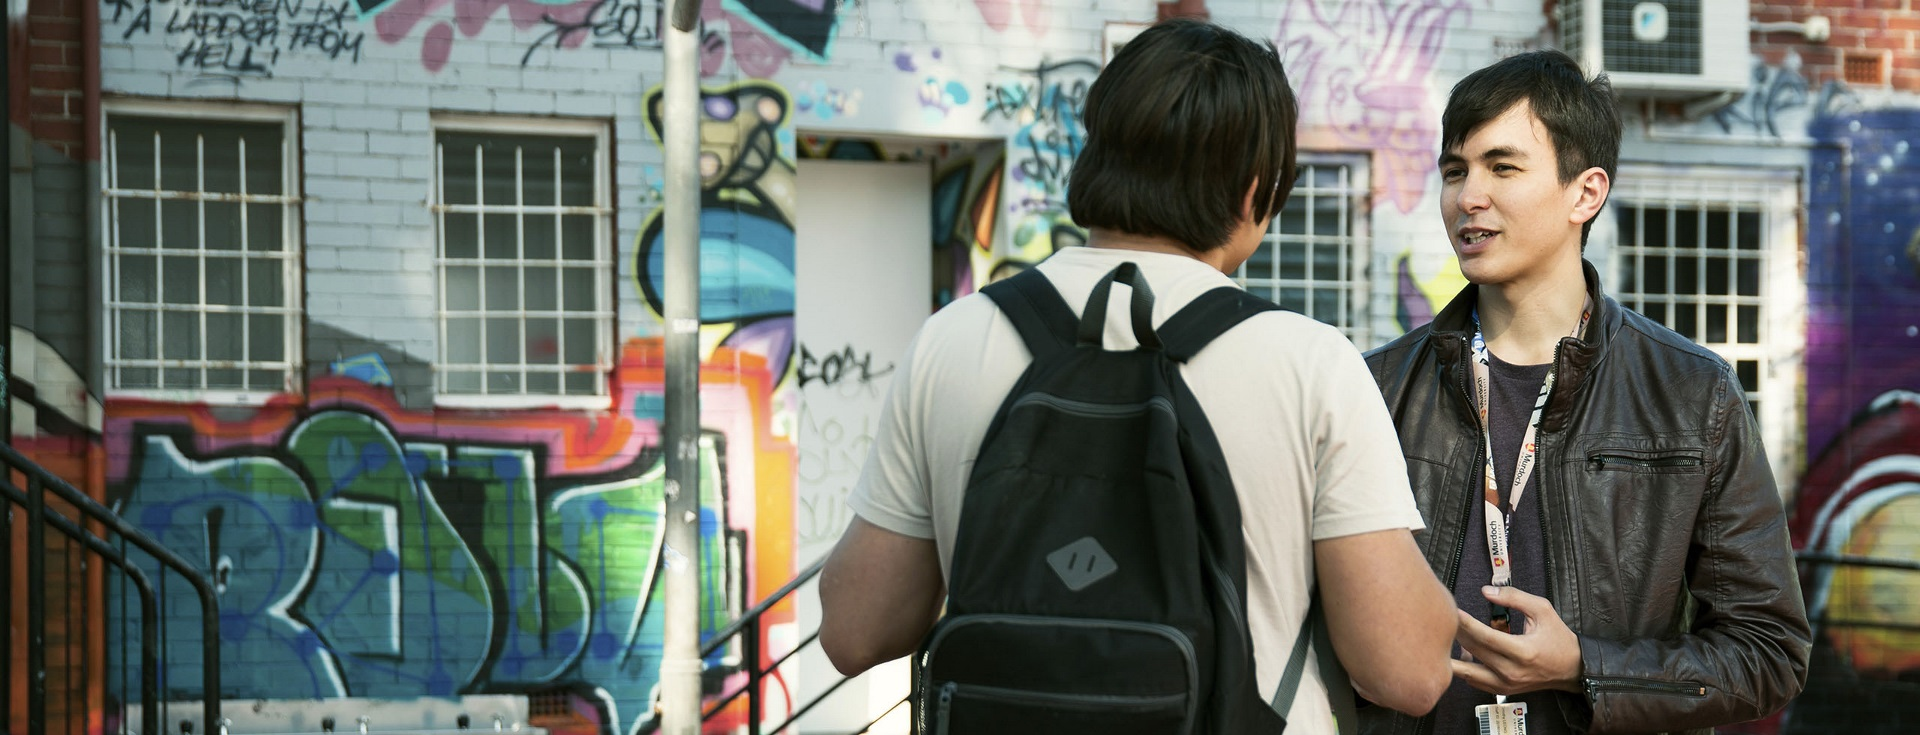 Two students having a discussion in a graffiti alleyway